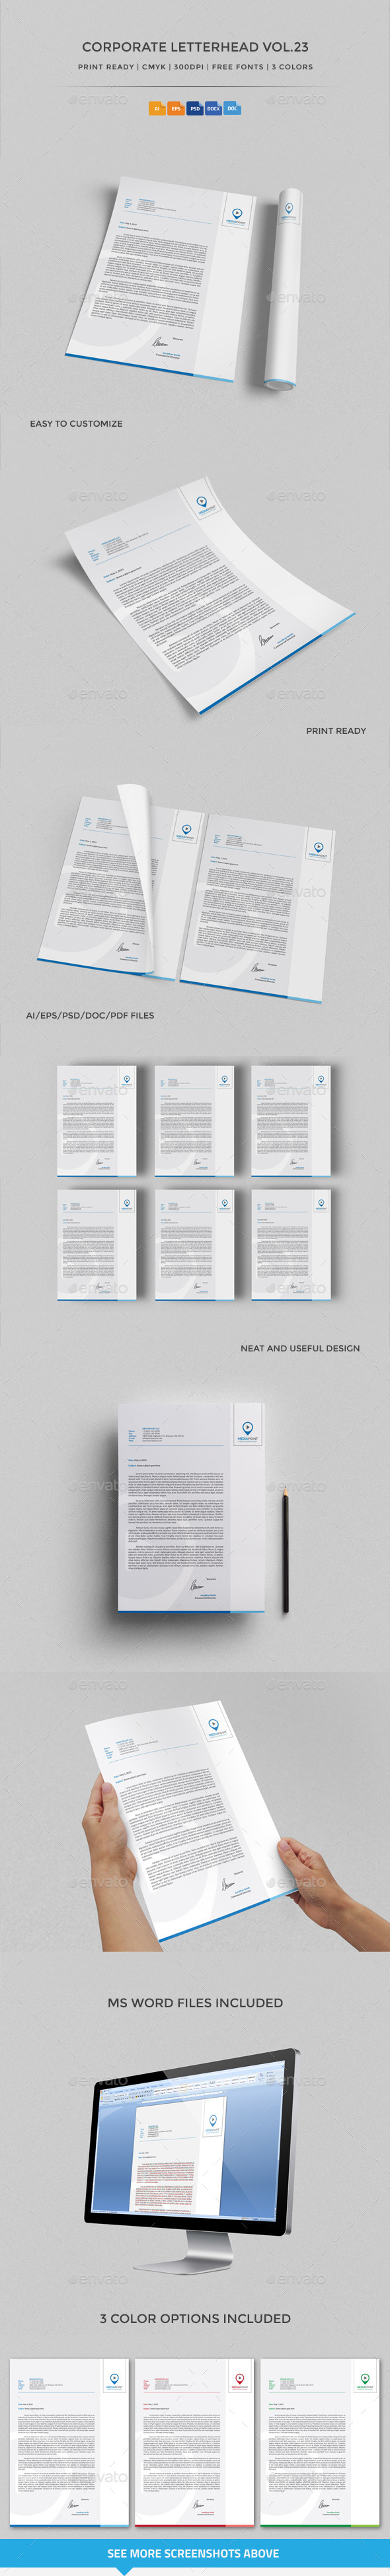 Corporate Letterhead vol.23 with MS Word DOC/DOCX - Stationery Print Templates